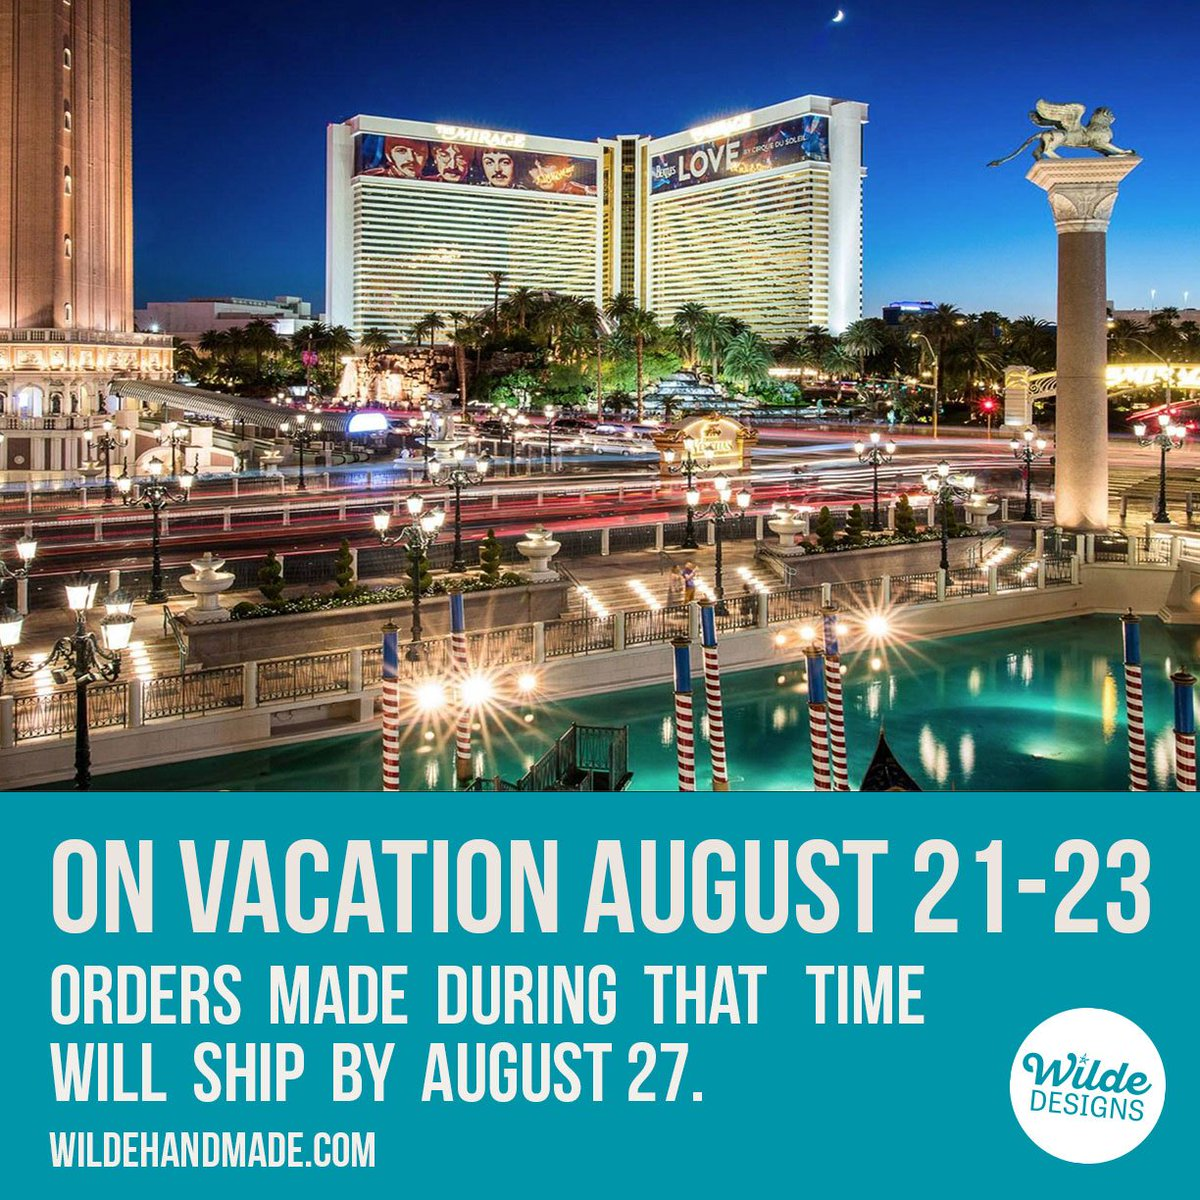 Quick reminder! I will be on vacation August 21-23rd. Ill still be checking on on social media, it just wont be as consistent. All orders placed during that time will ship on August 27th, so you probably wont even notice the lag. #WildeGeeks #VacationMode